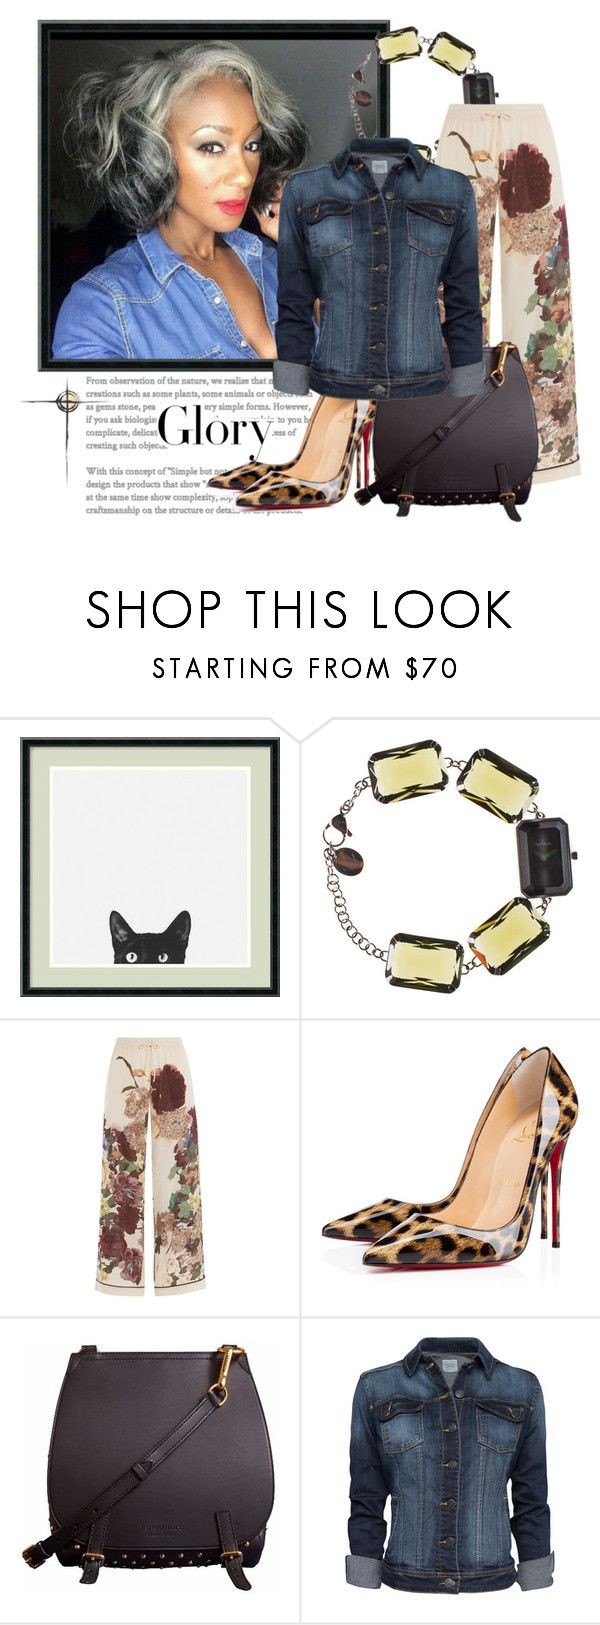 """Glory"" by clardy ❤ liked on Polyvore featuring Tiffany & Co., Amanti Art, Toy Watch, Valentino, Christian Louboutin, Burberry, MANGO, jeans, glory and mature"